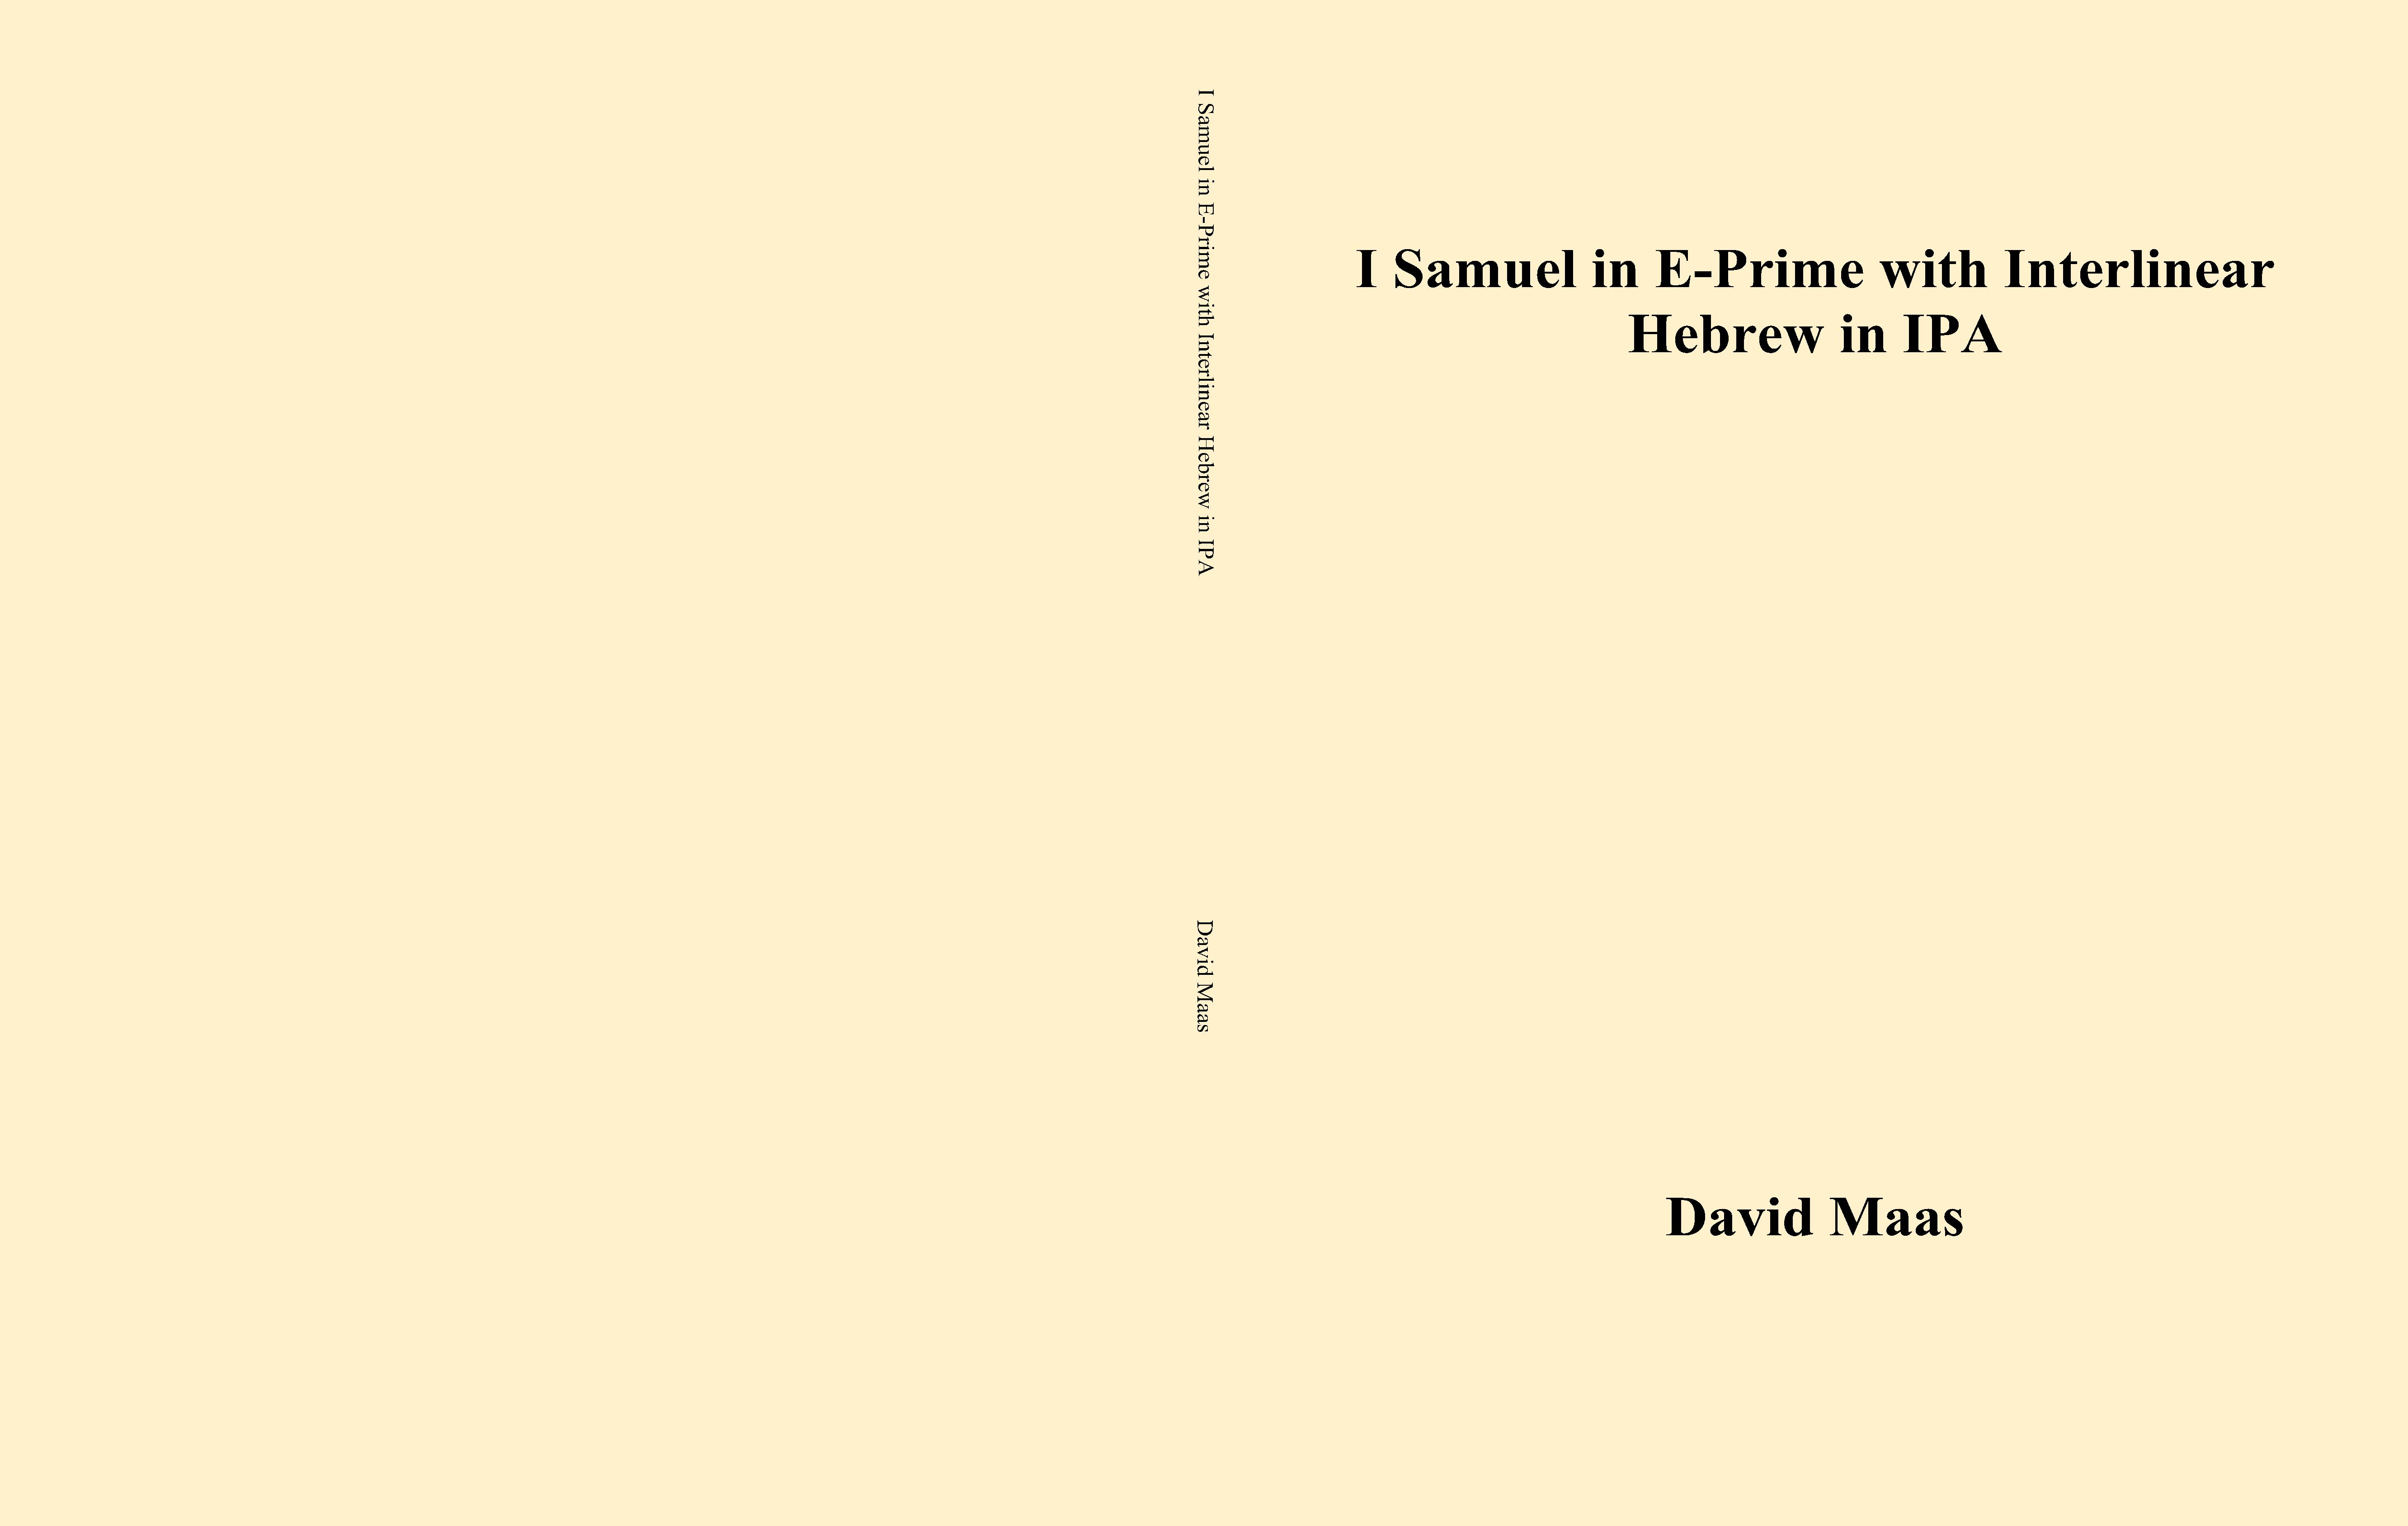 I Samuel in E-Prime with Interlinear Hebrew in IPA cover image